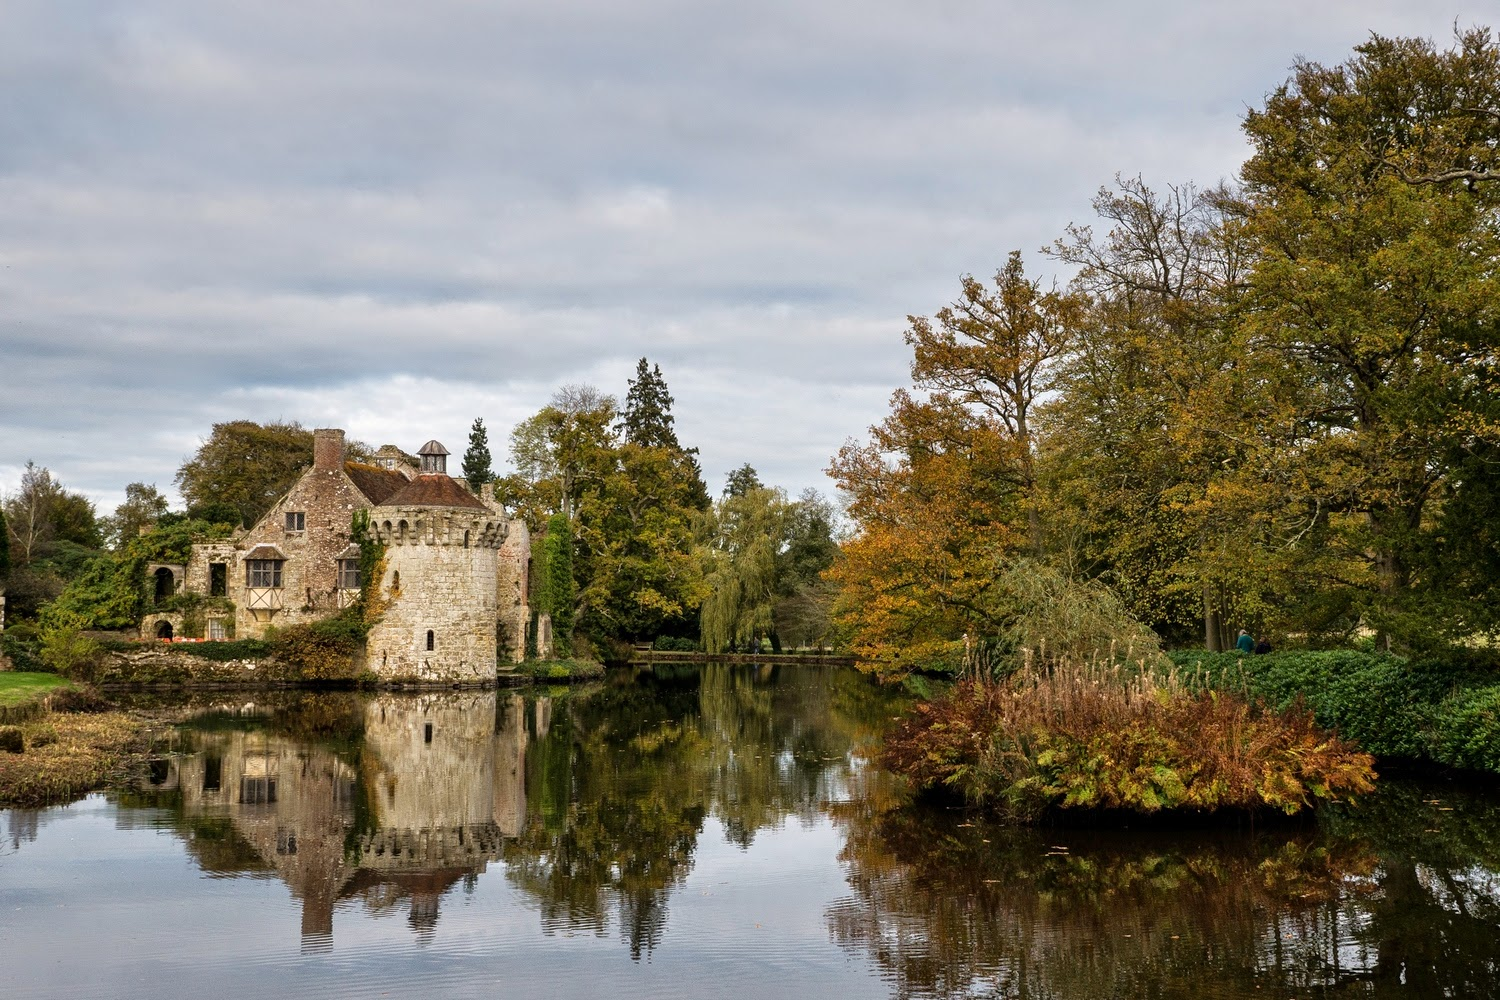 Michael Goodes: Scotney Castle Gardens in the Fall